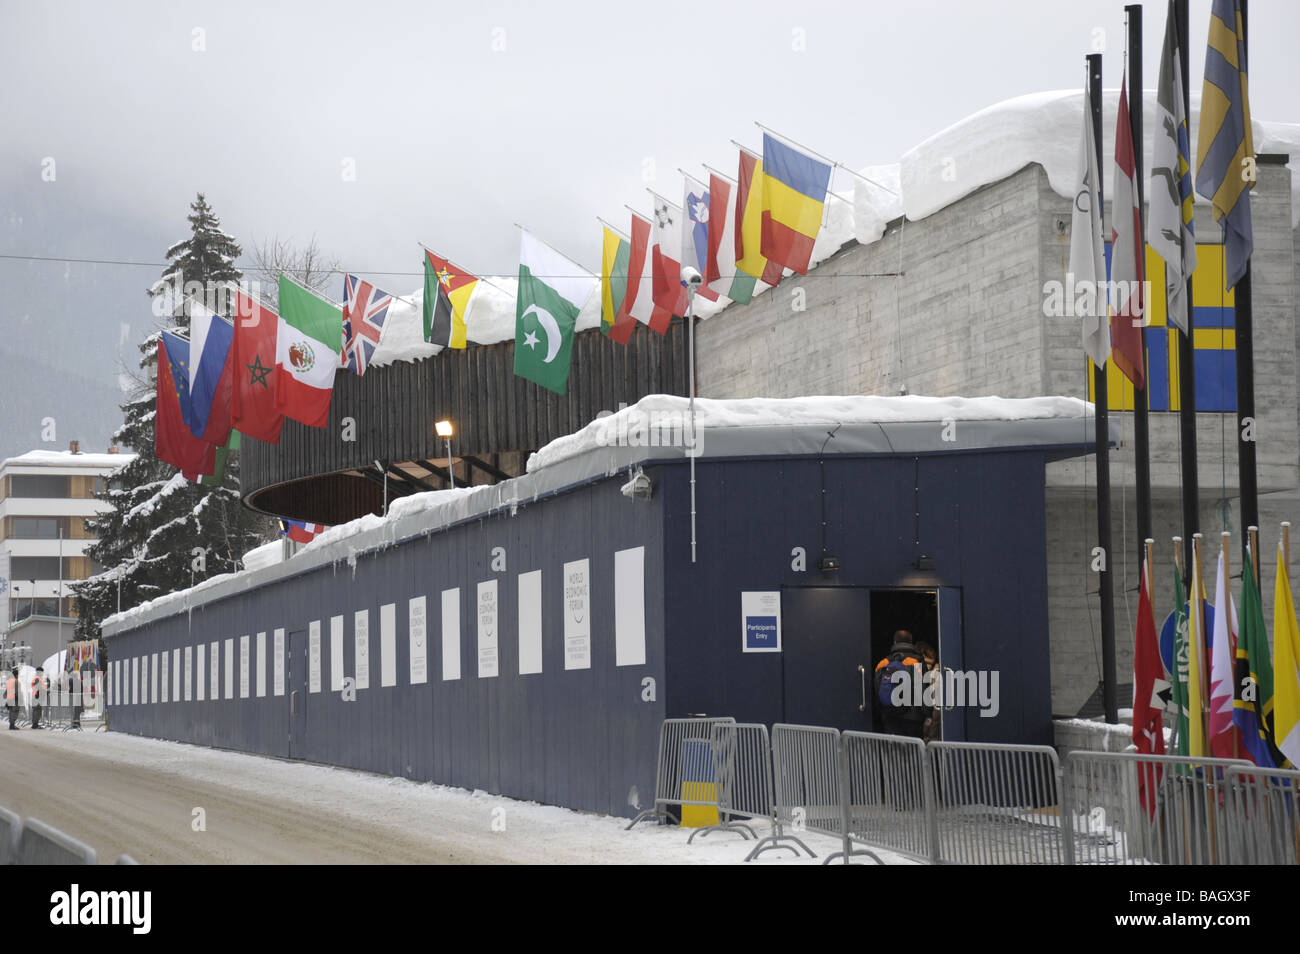 Le Forum économique mondial de Davos Photo Stock